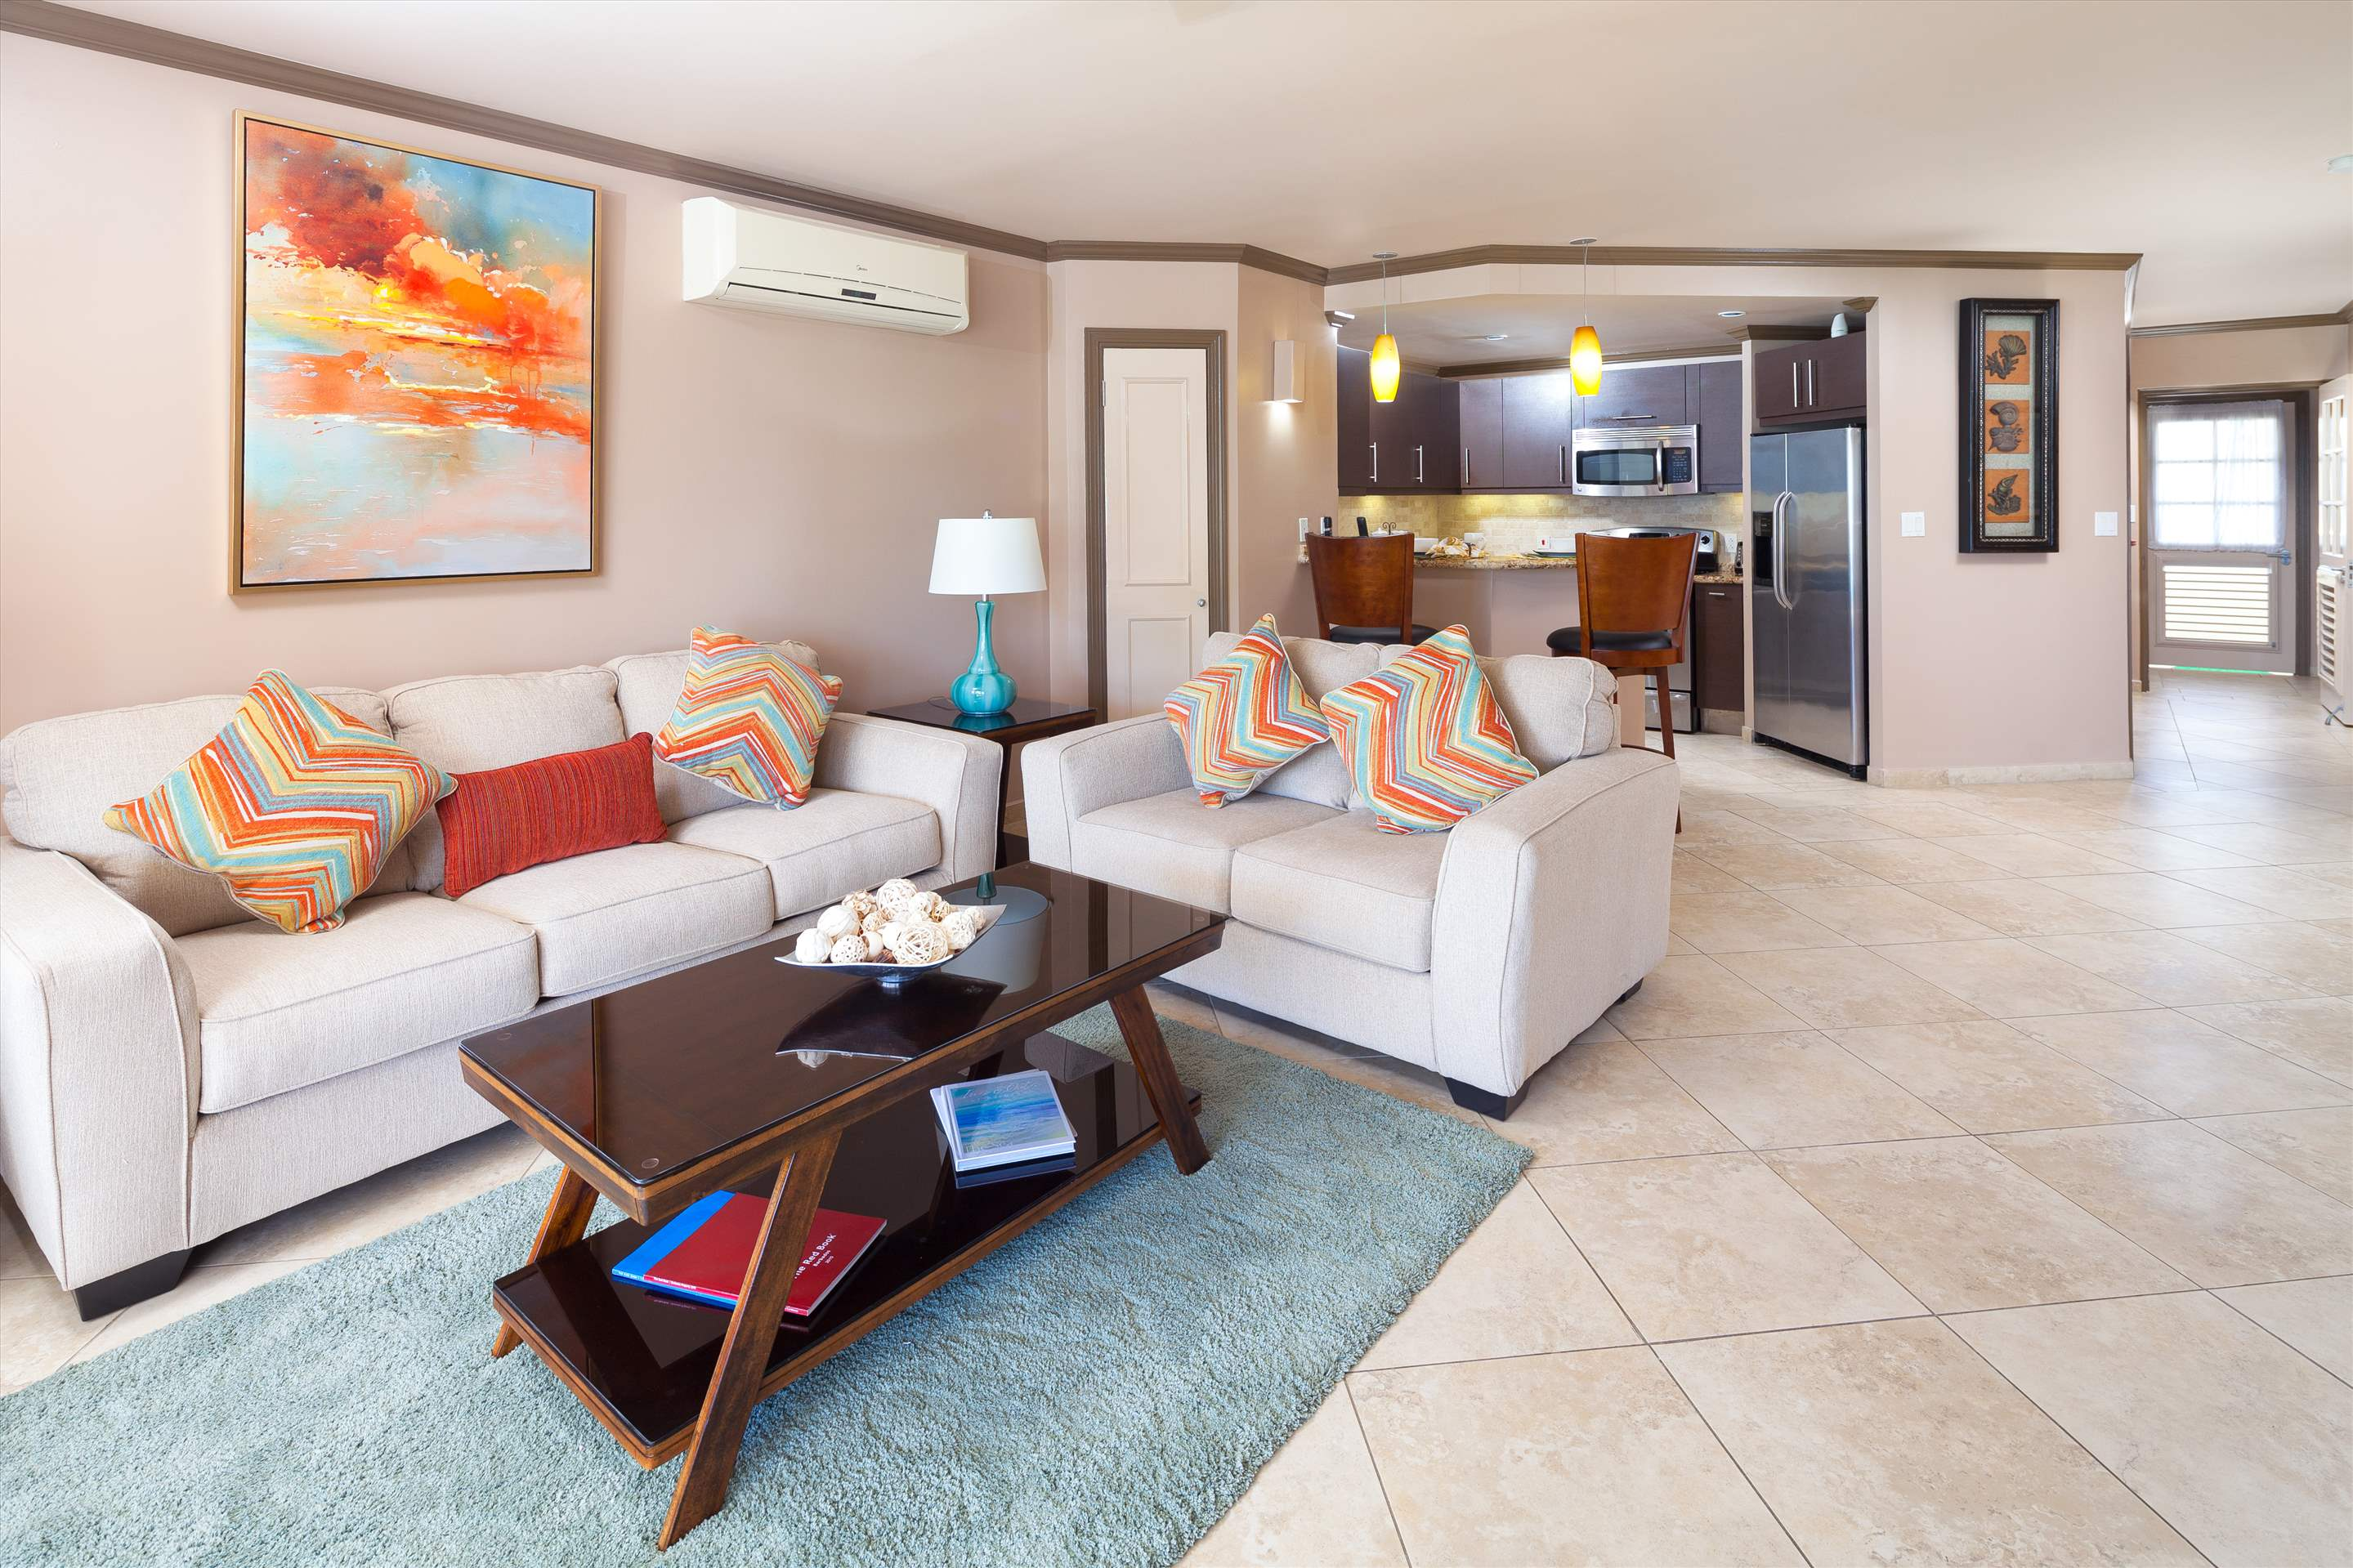 Sapphire Beach 309, 2 bedroom, 2 bedroom apartment in St. Lawrence Gap & South Coast, Barbados Photo #5